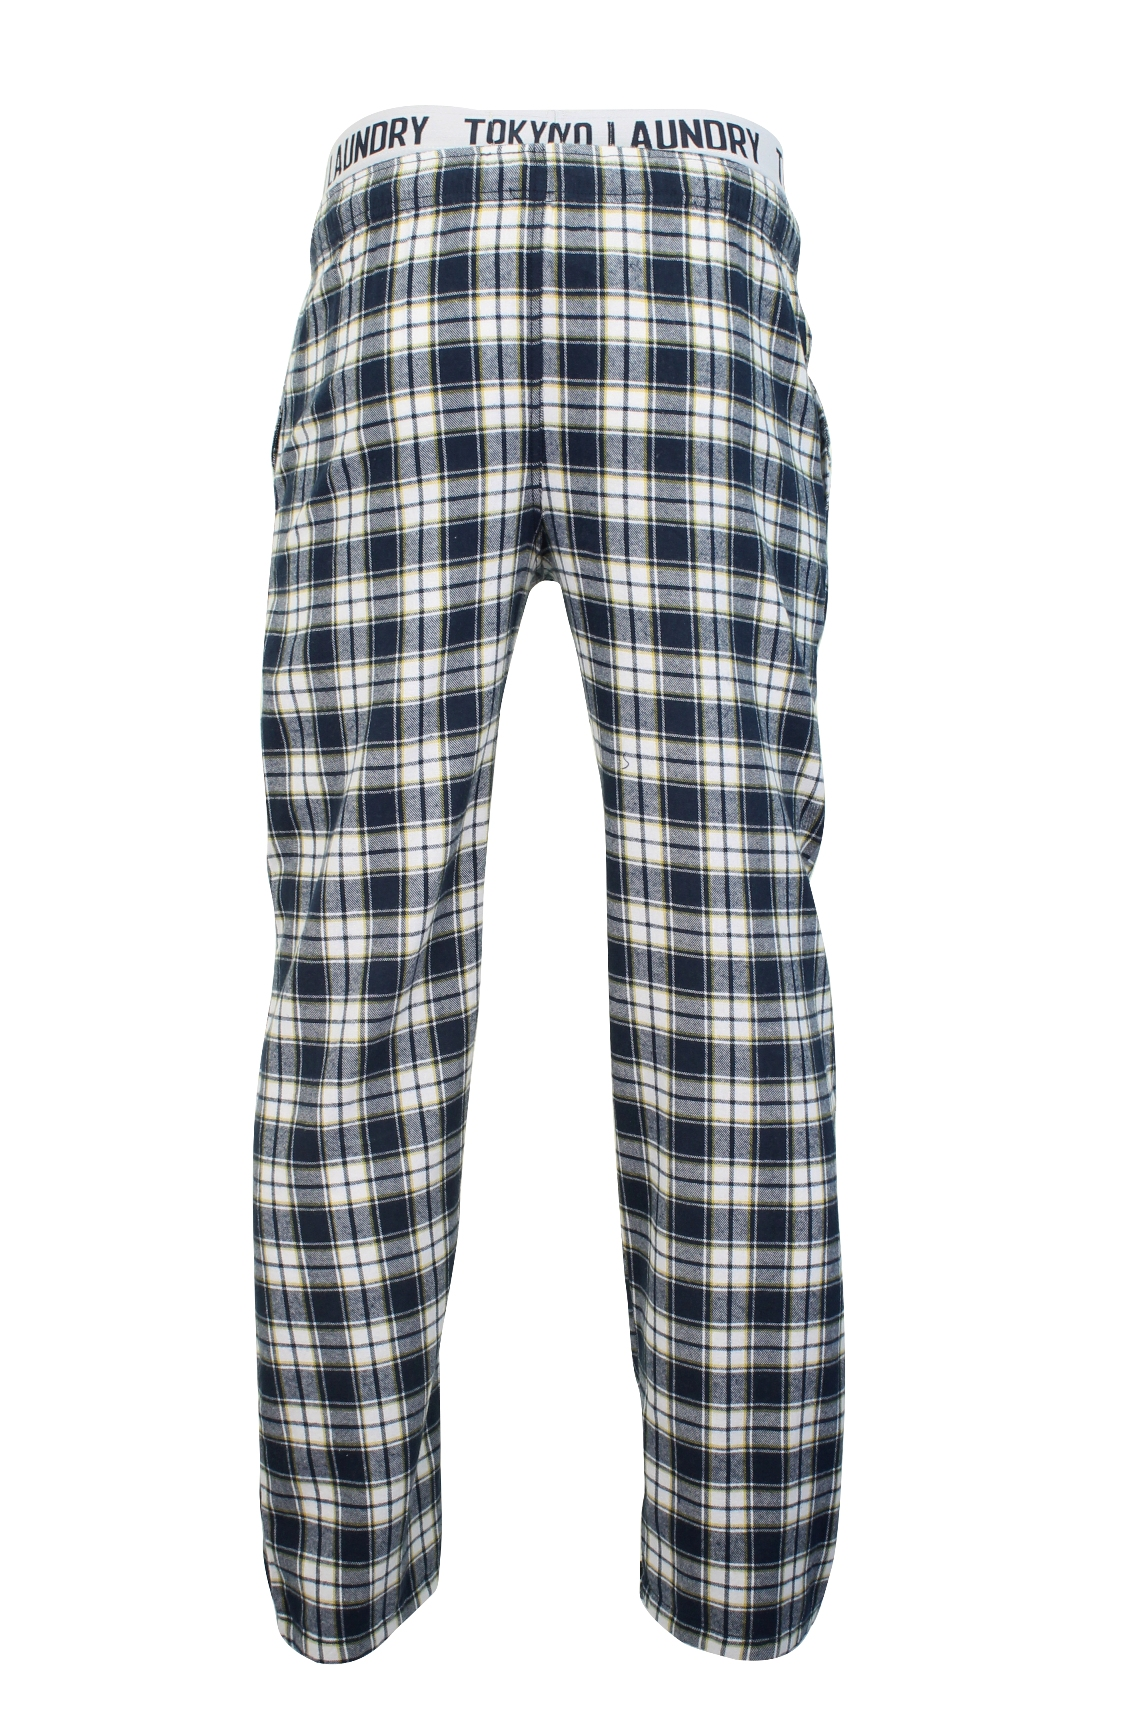 Shop Target for Pajama Bottoms you will love at great low prices. Spend $35+ or use your REDcard & get free 2-day shipping on most items or same-day pick-up in store.